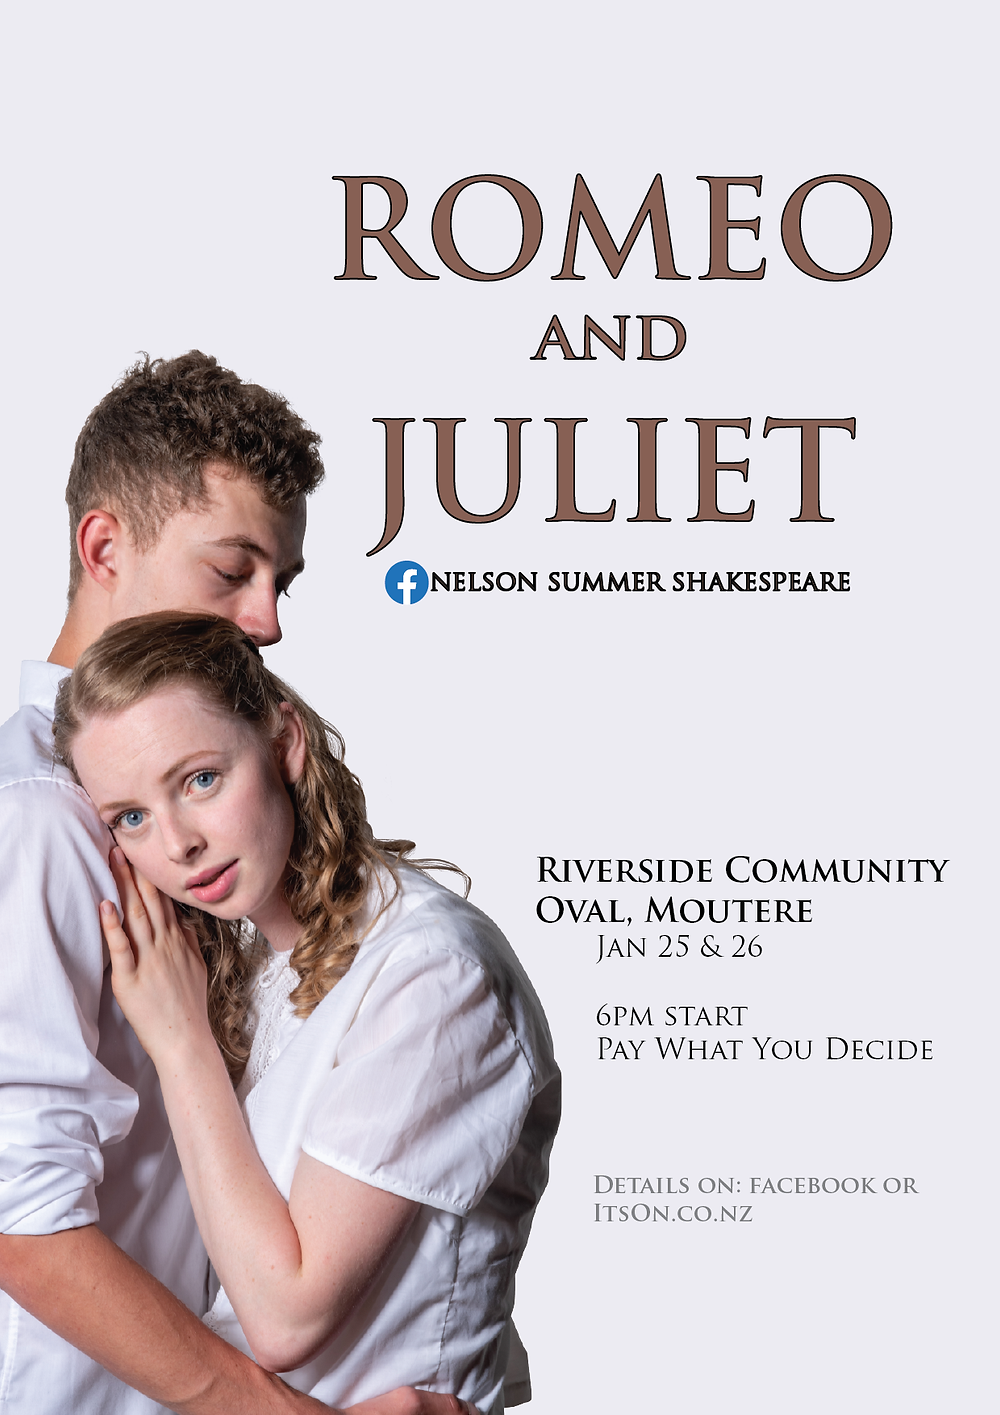 Romeo And Juliet at Riverside